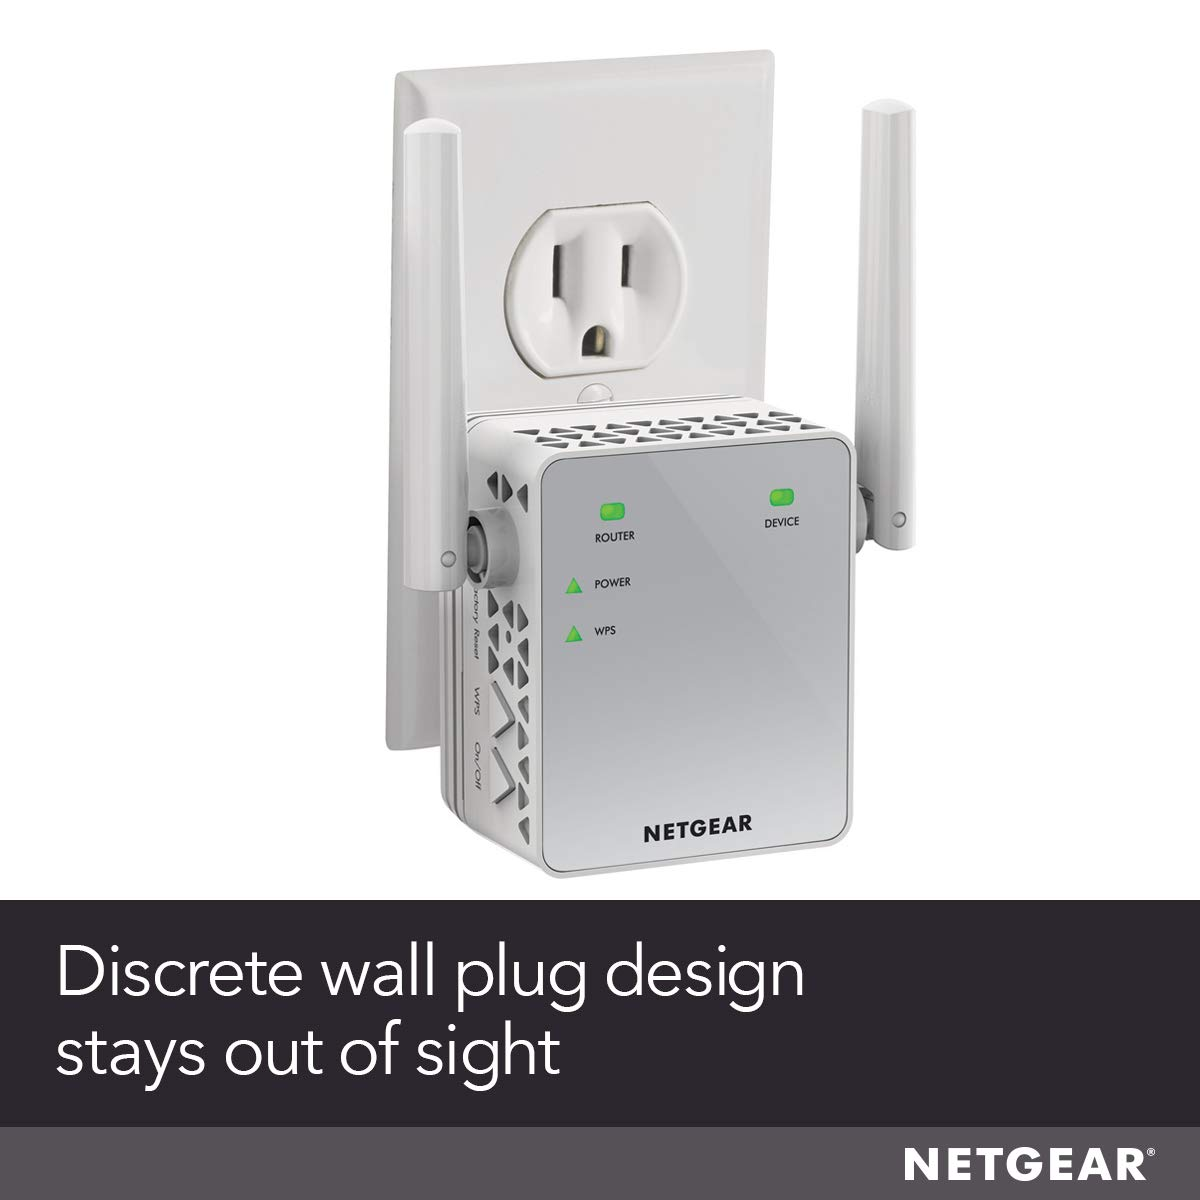 NETGEAR WiFi Range Extender EX3700 - Coverage up to 1000 sq ft  and 15  devices with AC750 Dual Band Wireless Signal Booster & Repeater (up to  750Mbps